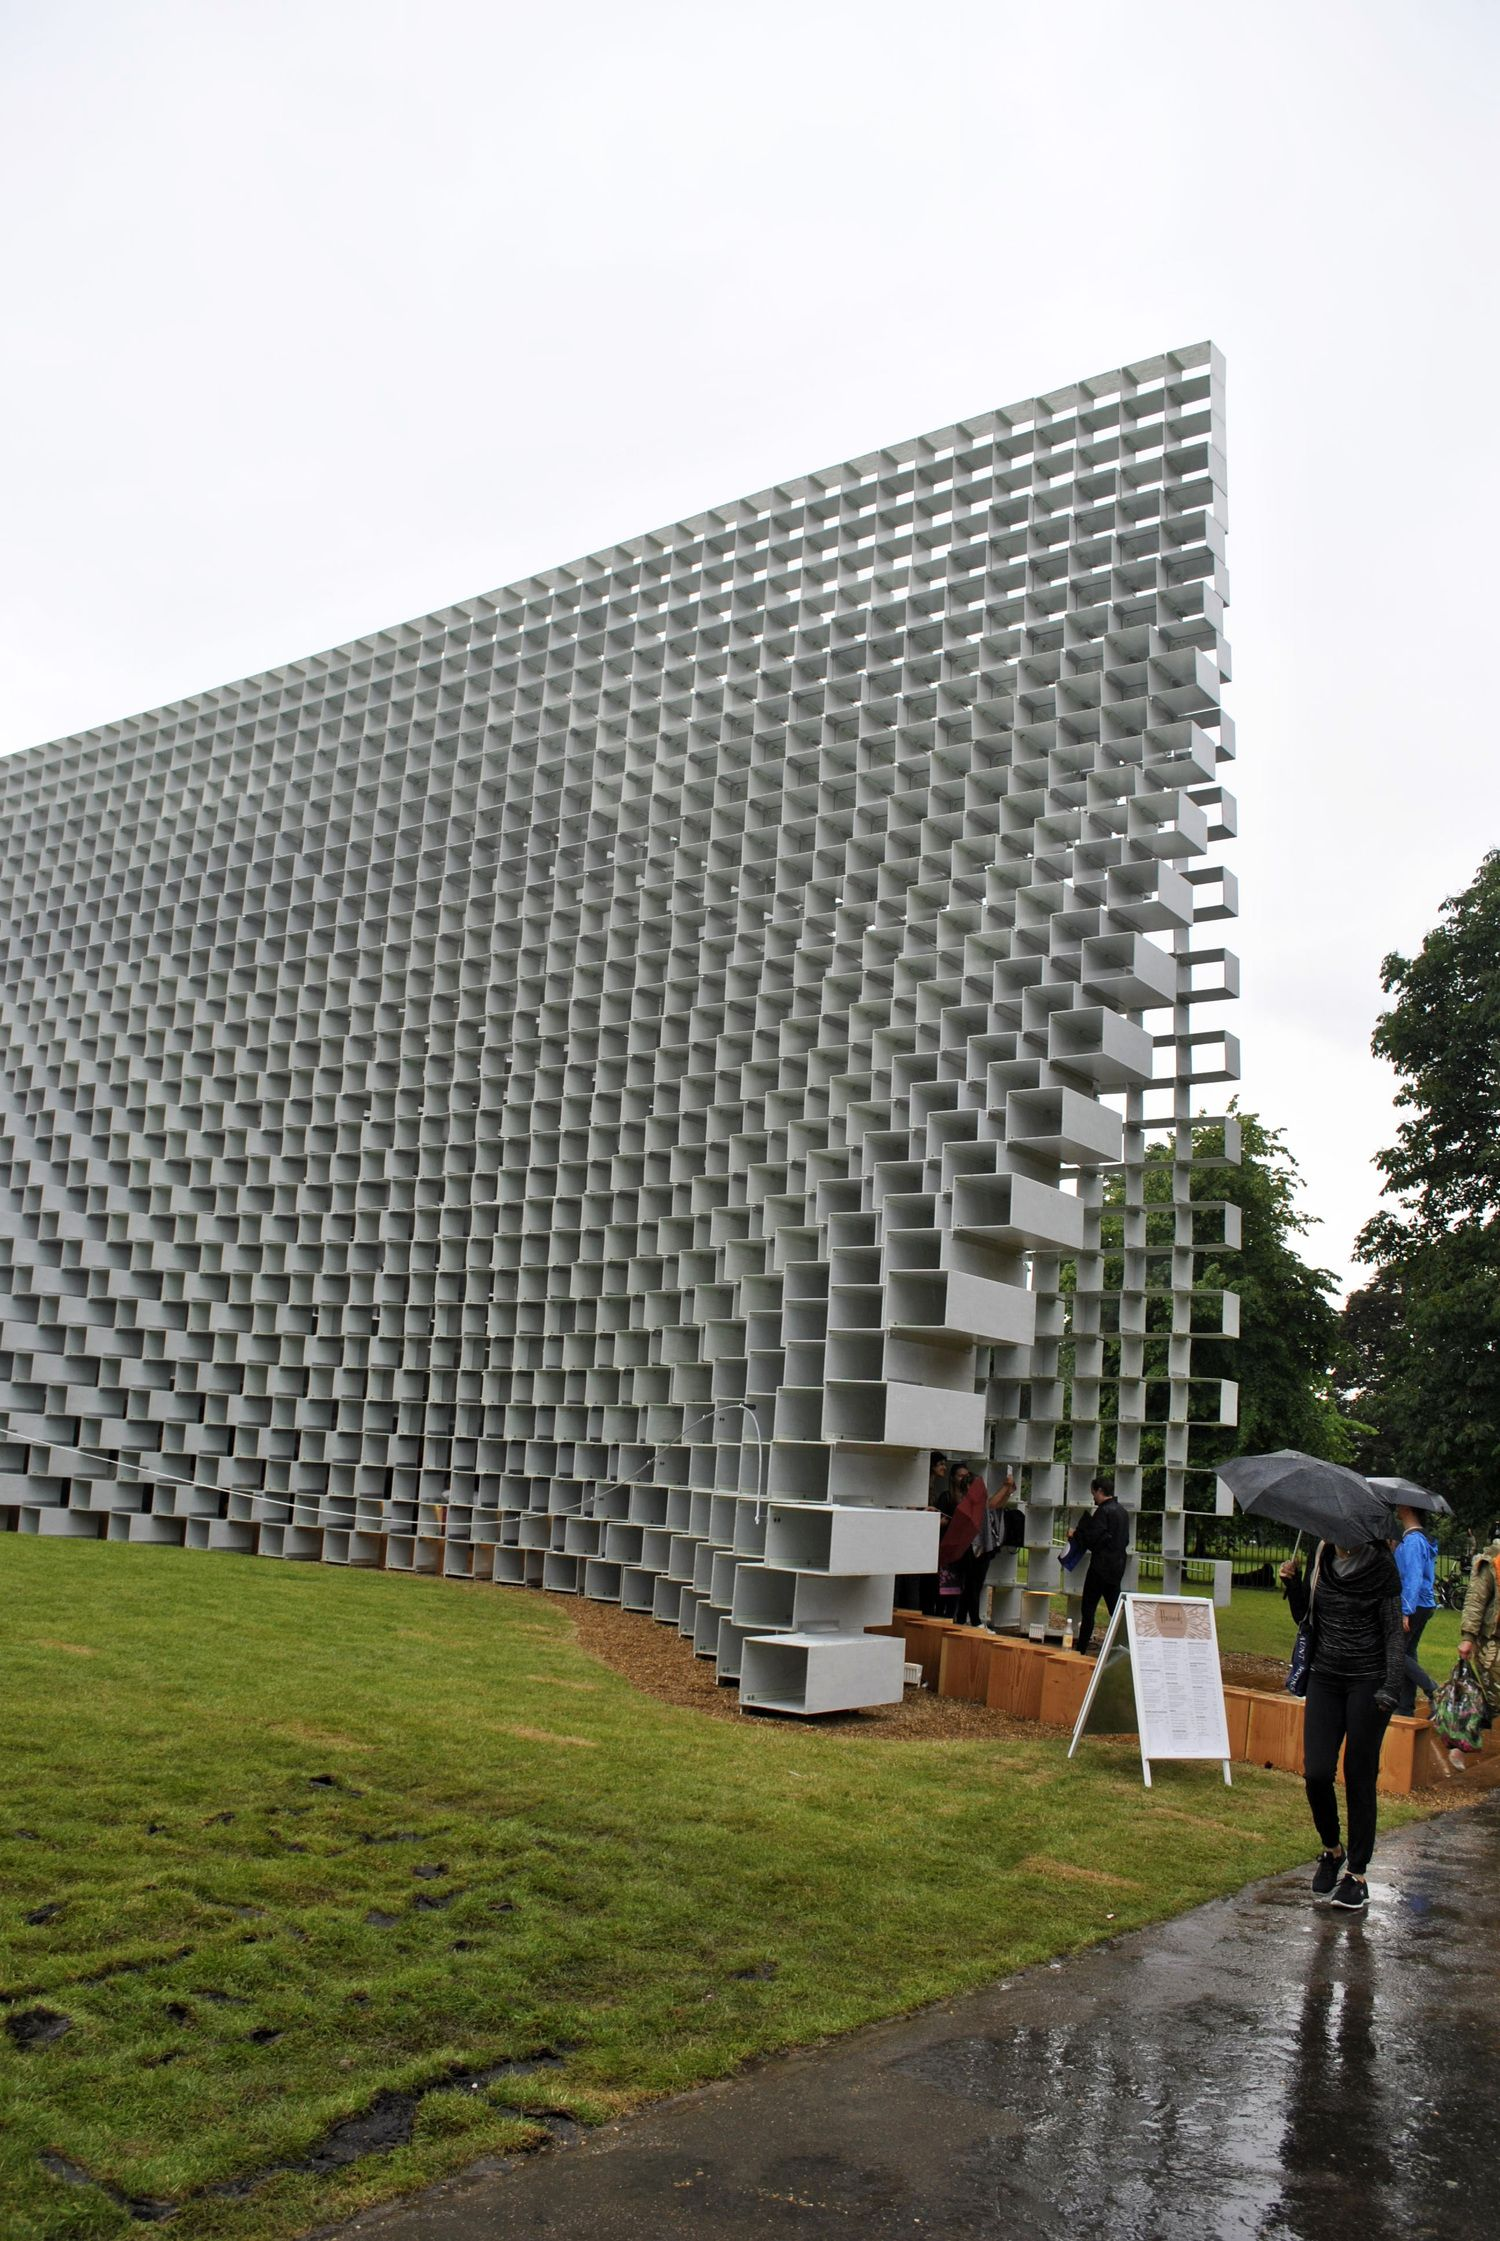 The Best Serpentine Gallery Pavilions I Ve Seen In A Long Time Part 1 Temporary Architecture Pavilion Architecture